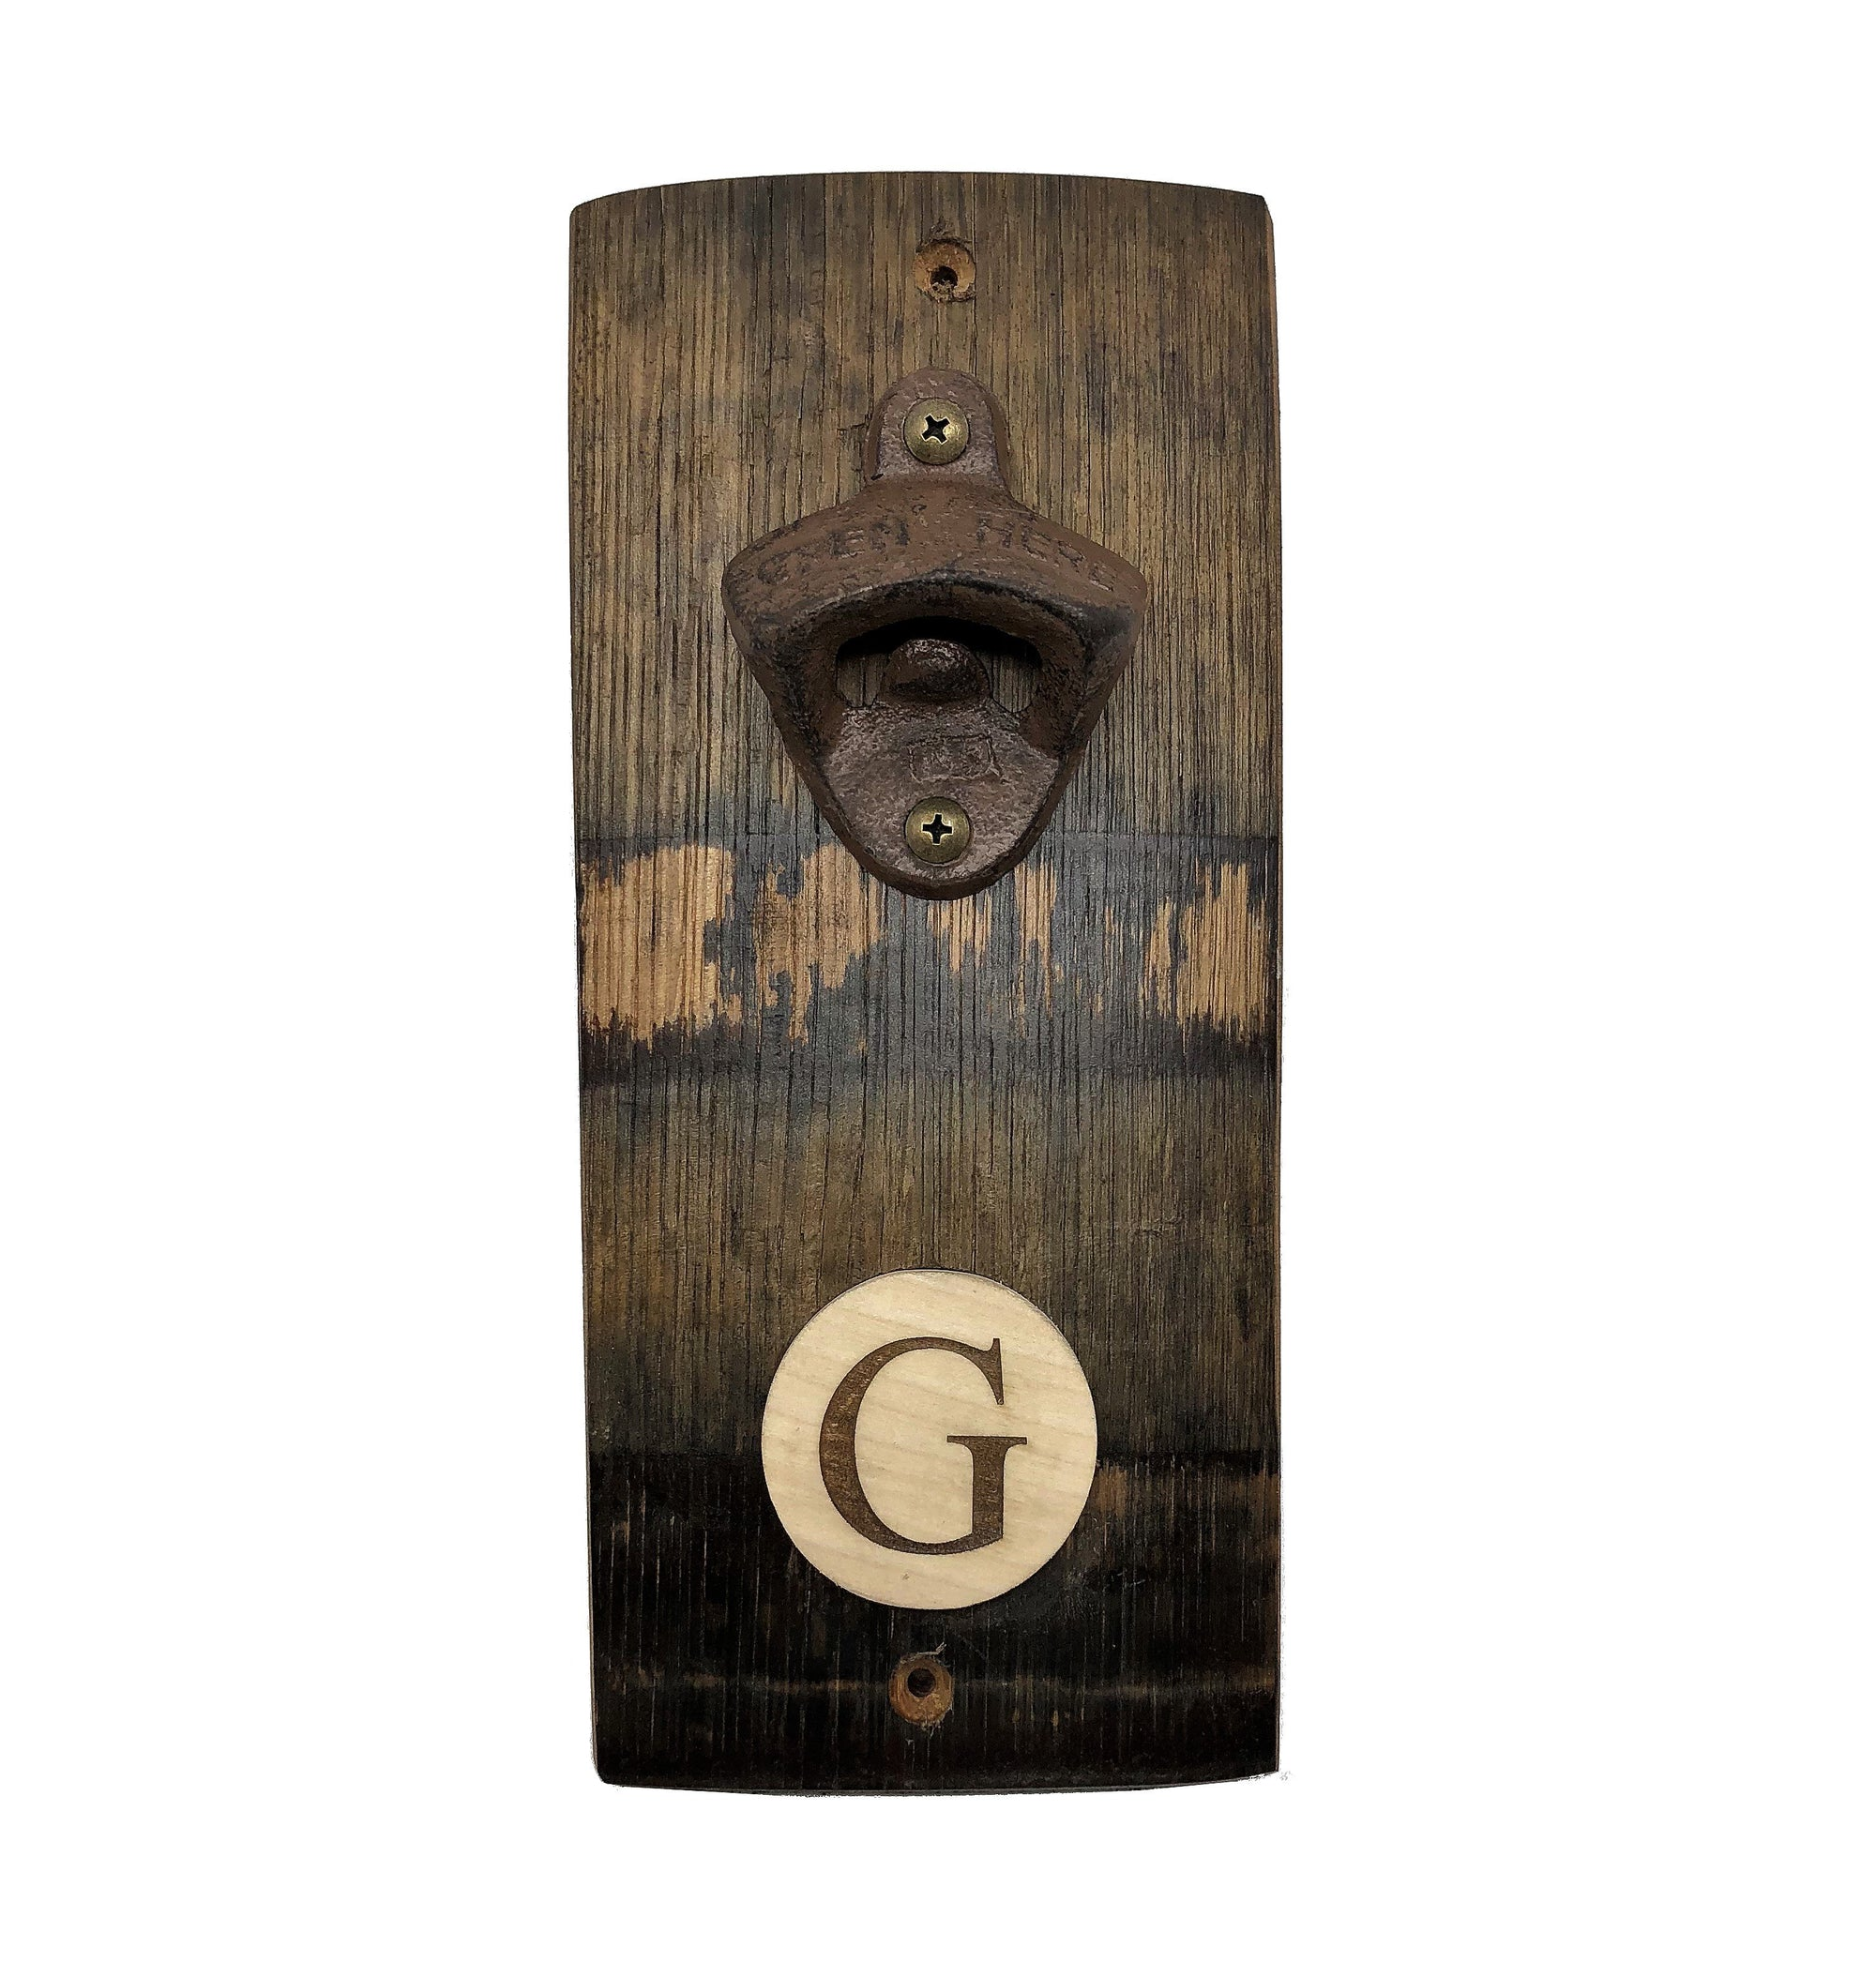 Bourbon Wood Bottle Opener